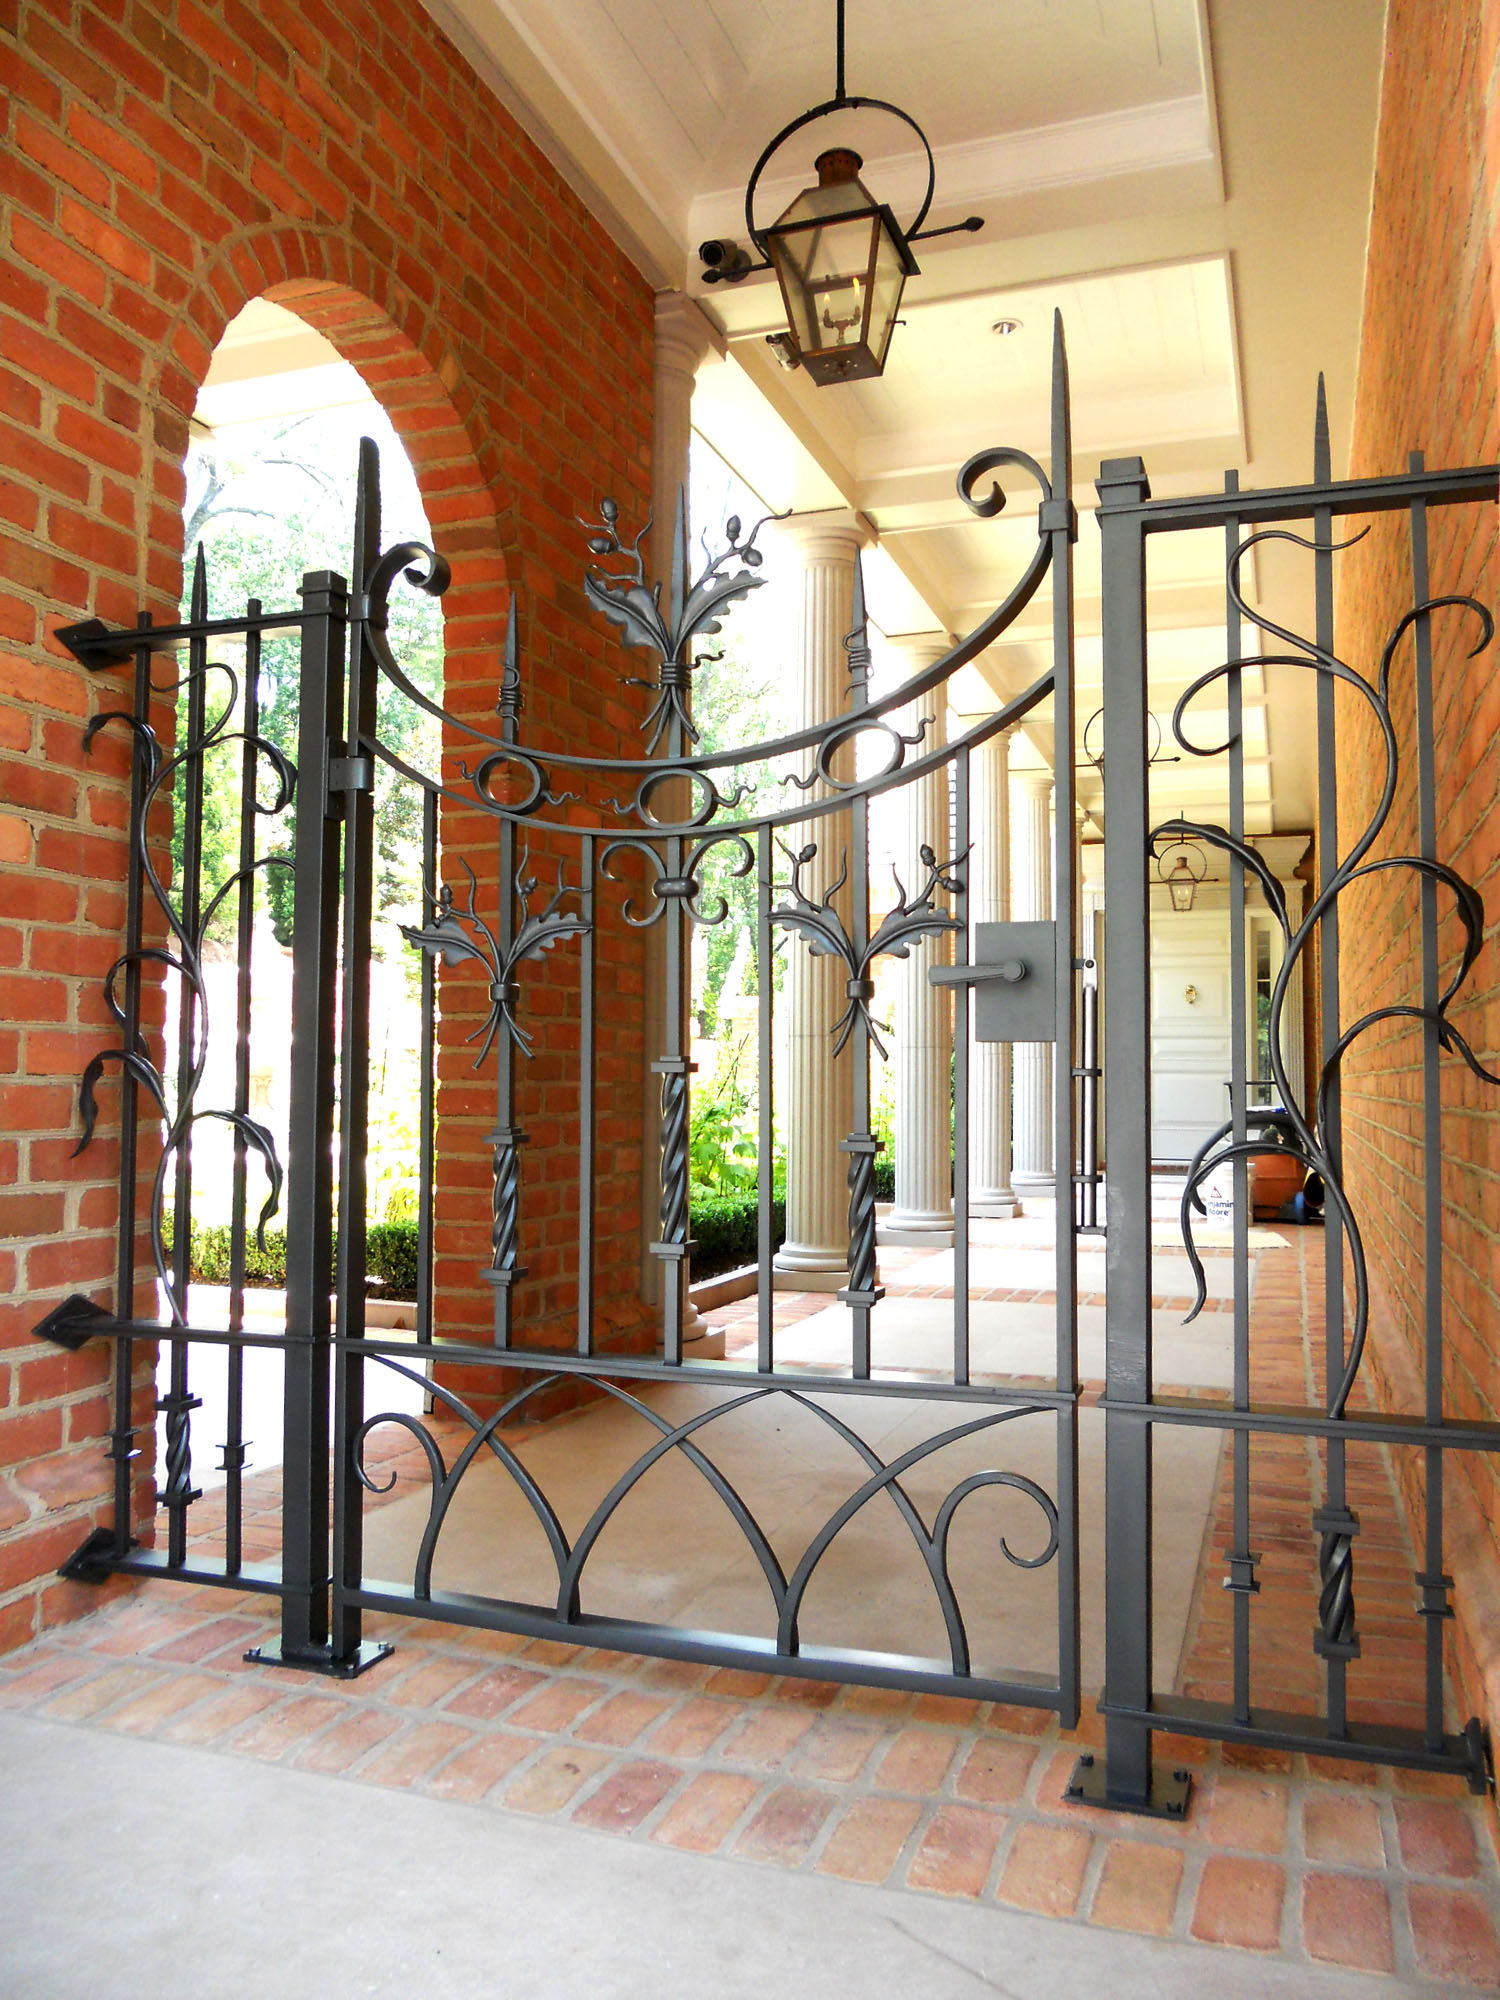 North Buckhead Arched Entry_large.jpg